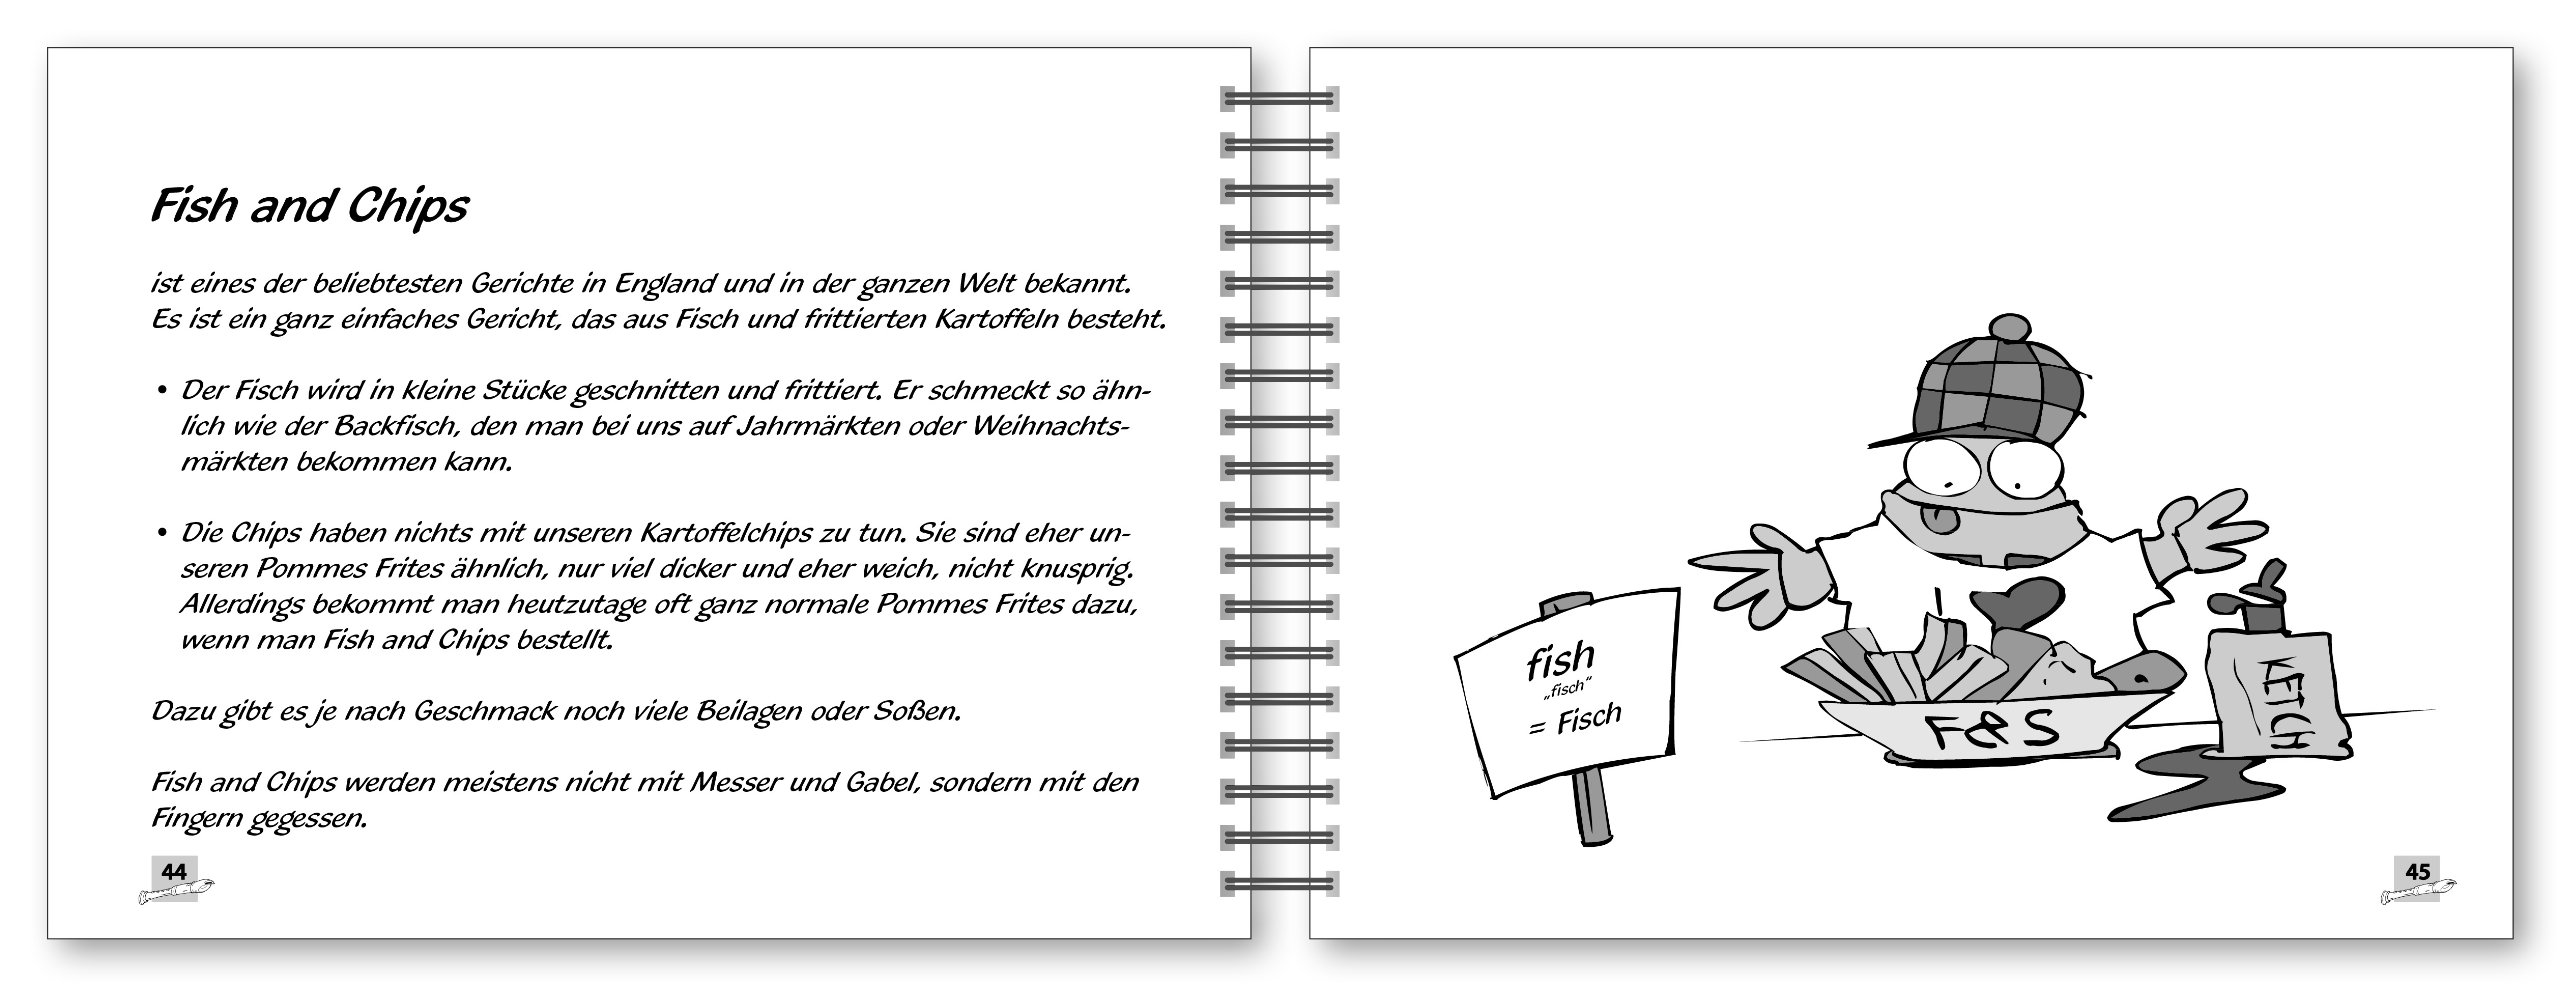 Voggy besucht England - Fish and Chips